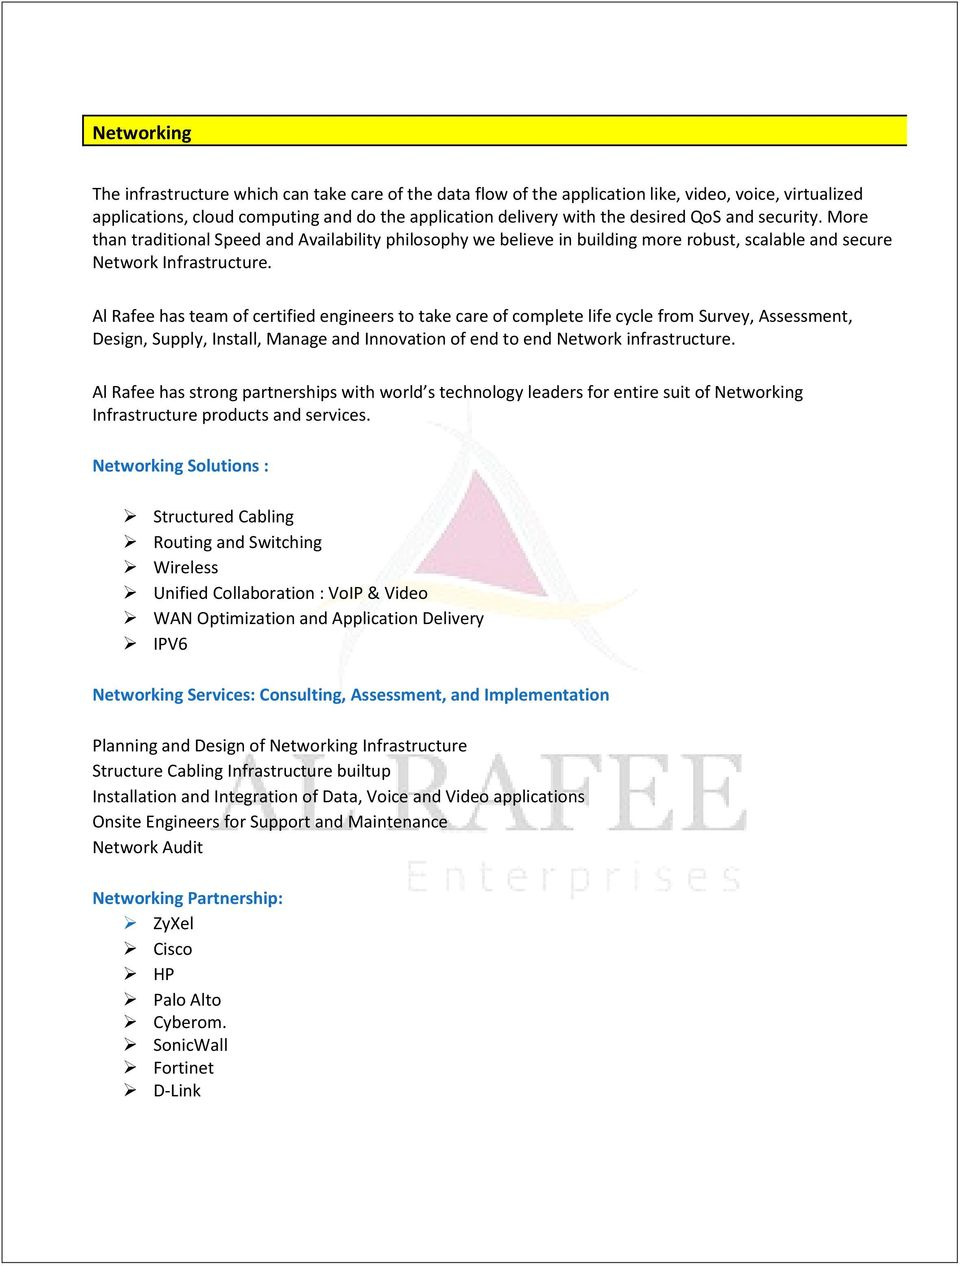 Al Rafee has team of certified engineers to take care of complete life cycle from Survey, Assessment, Design, Supply, Install, Manage and Innovation of end to end Network infrastructure.